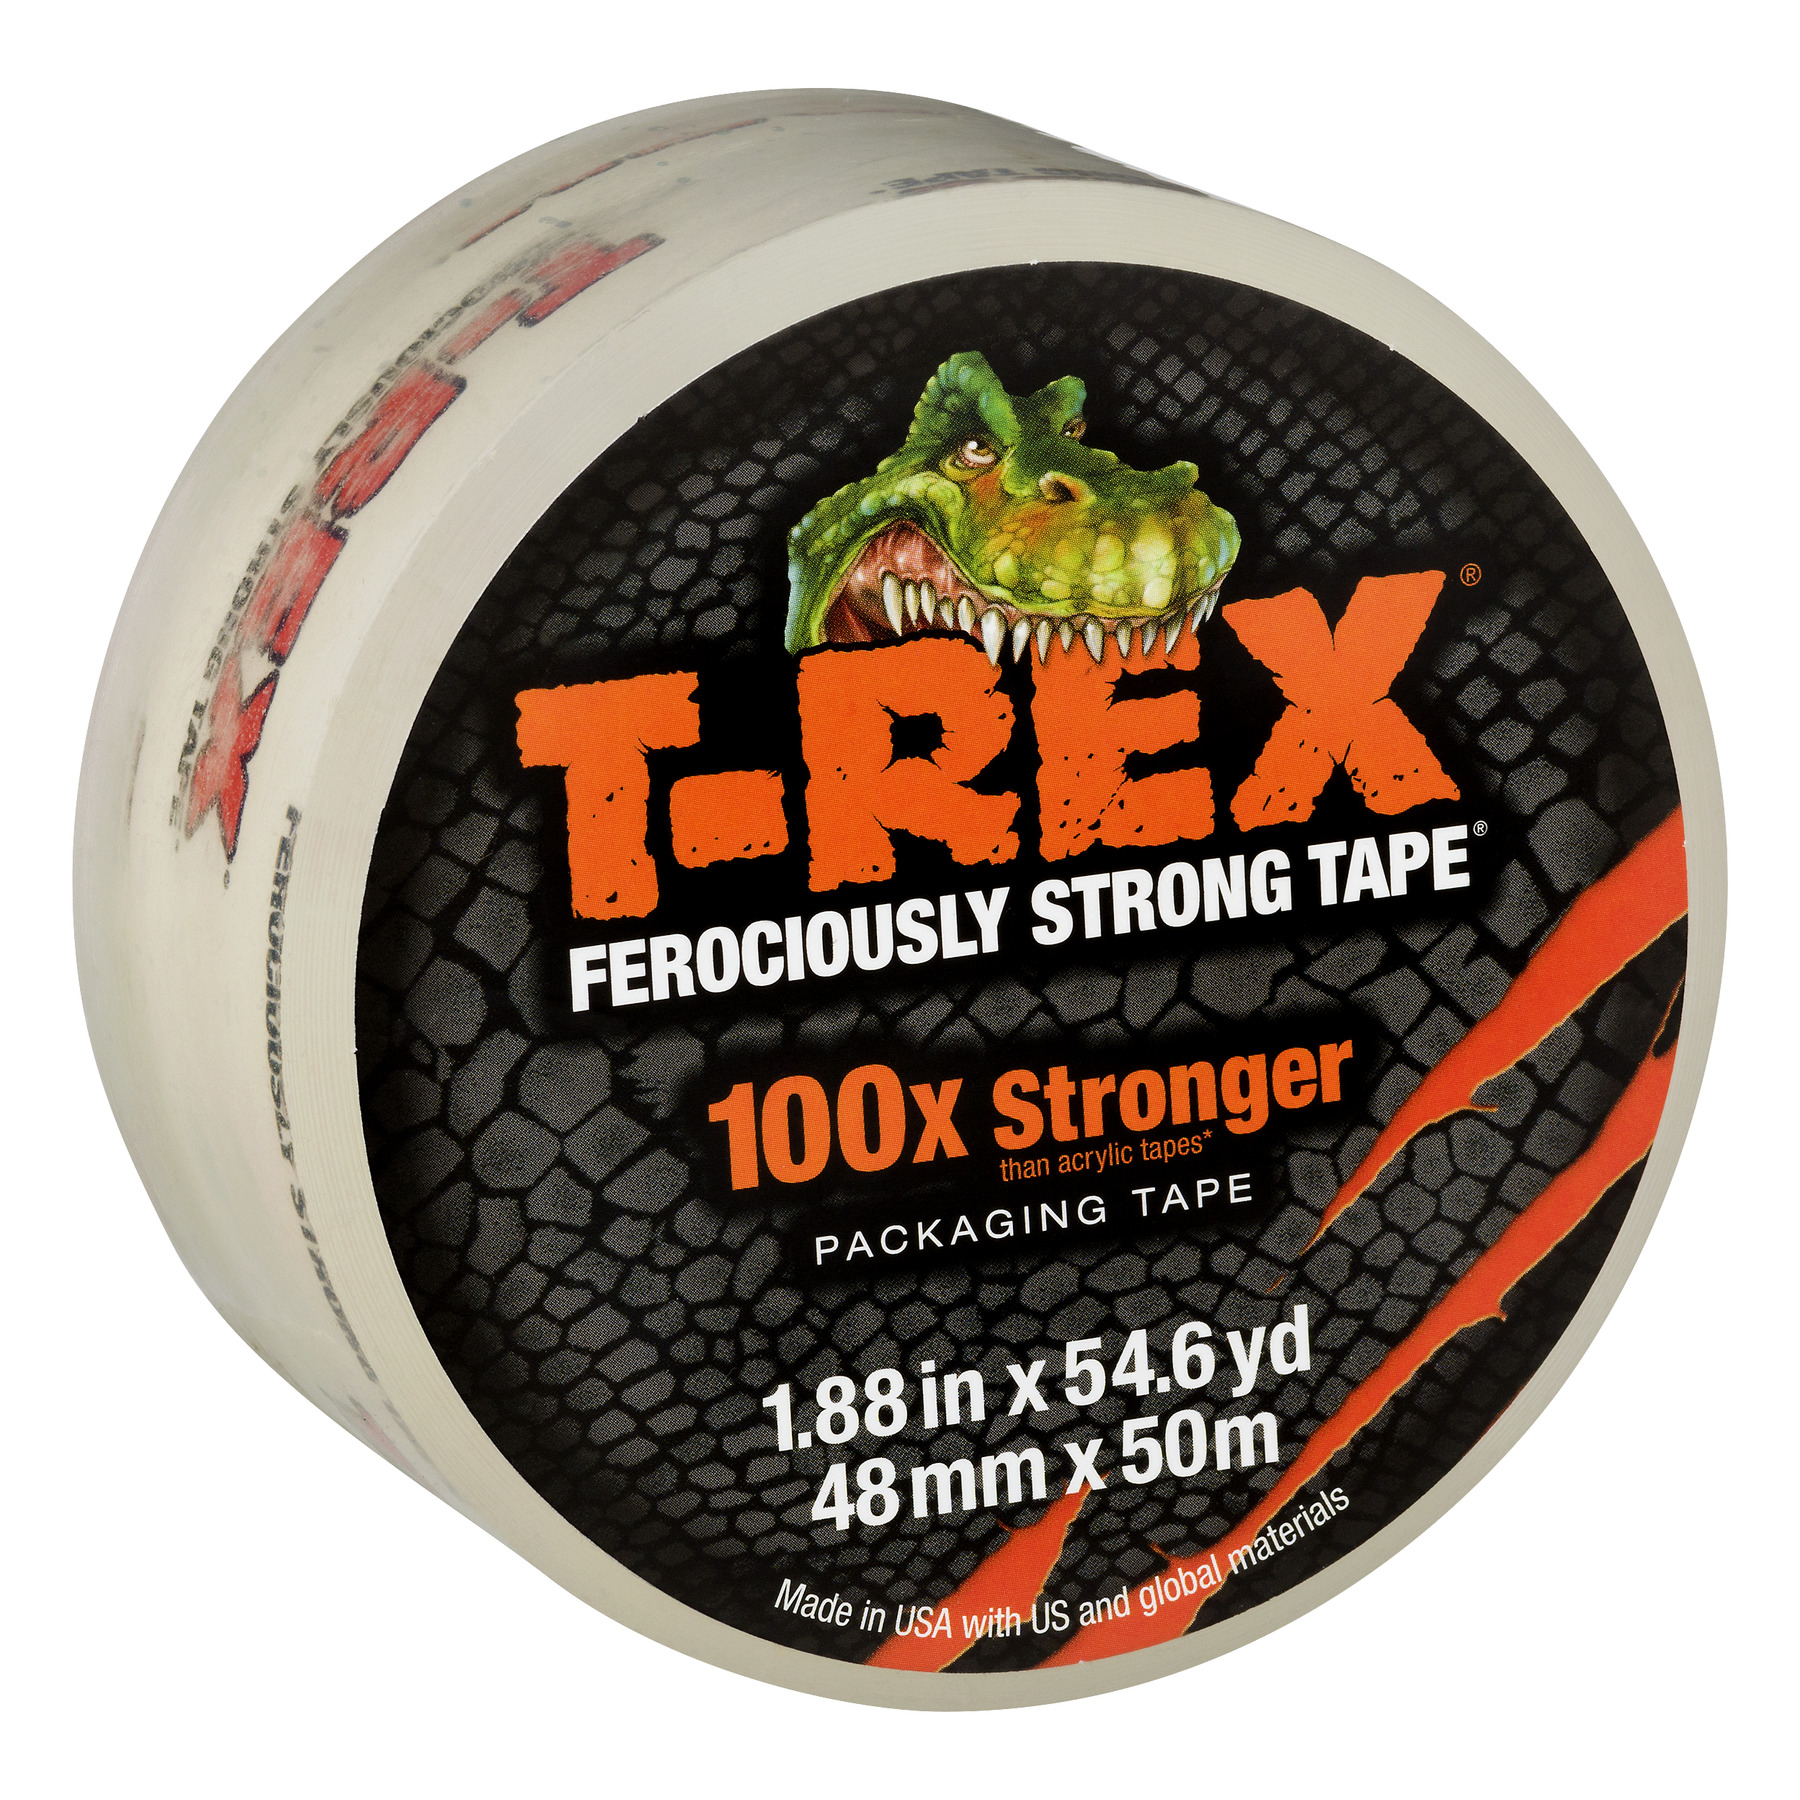 T-REX Strong Packaging Tape, 1.88 in. x 54.6 yd., Clear, 1-Count